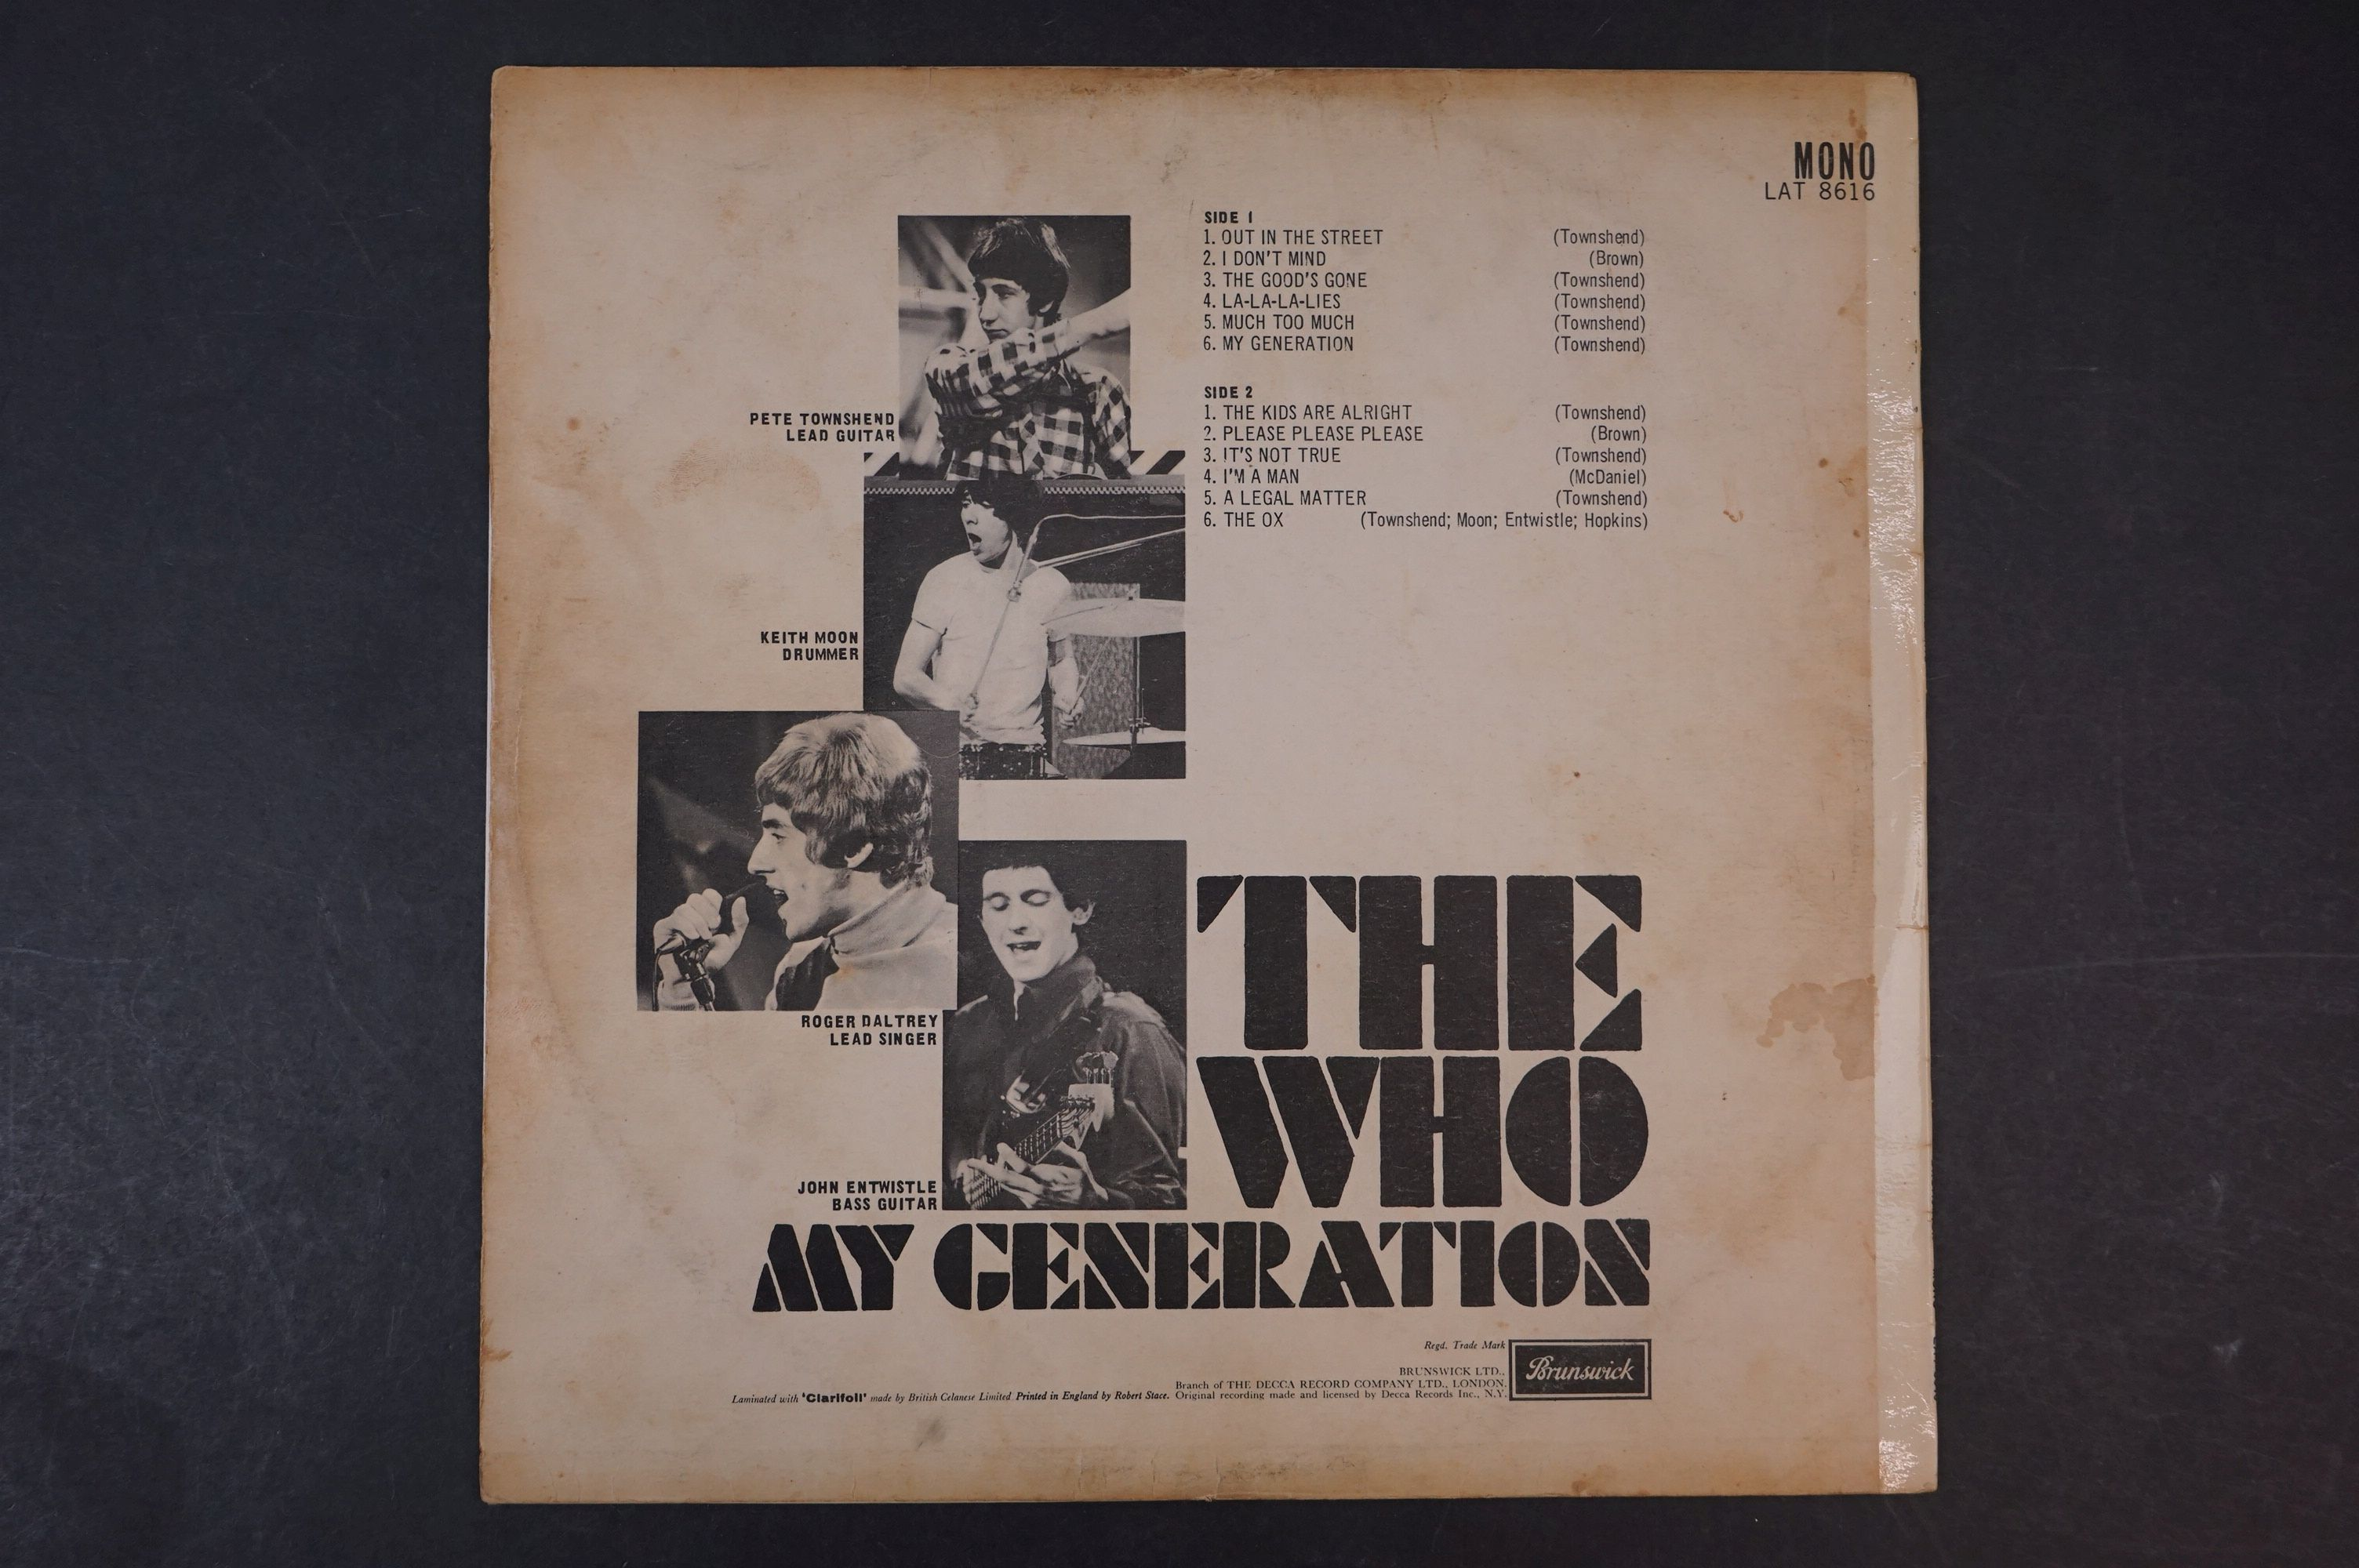 Vinyl - The Who My Generation LP on Brunswick LAT8616 mono with laminated front sleeve, silver & - Image 8 of 8